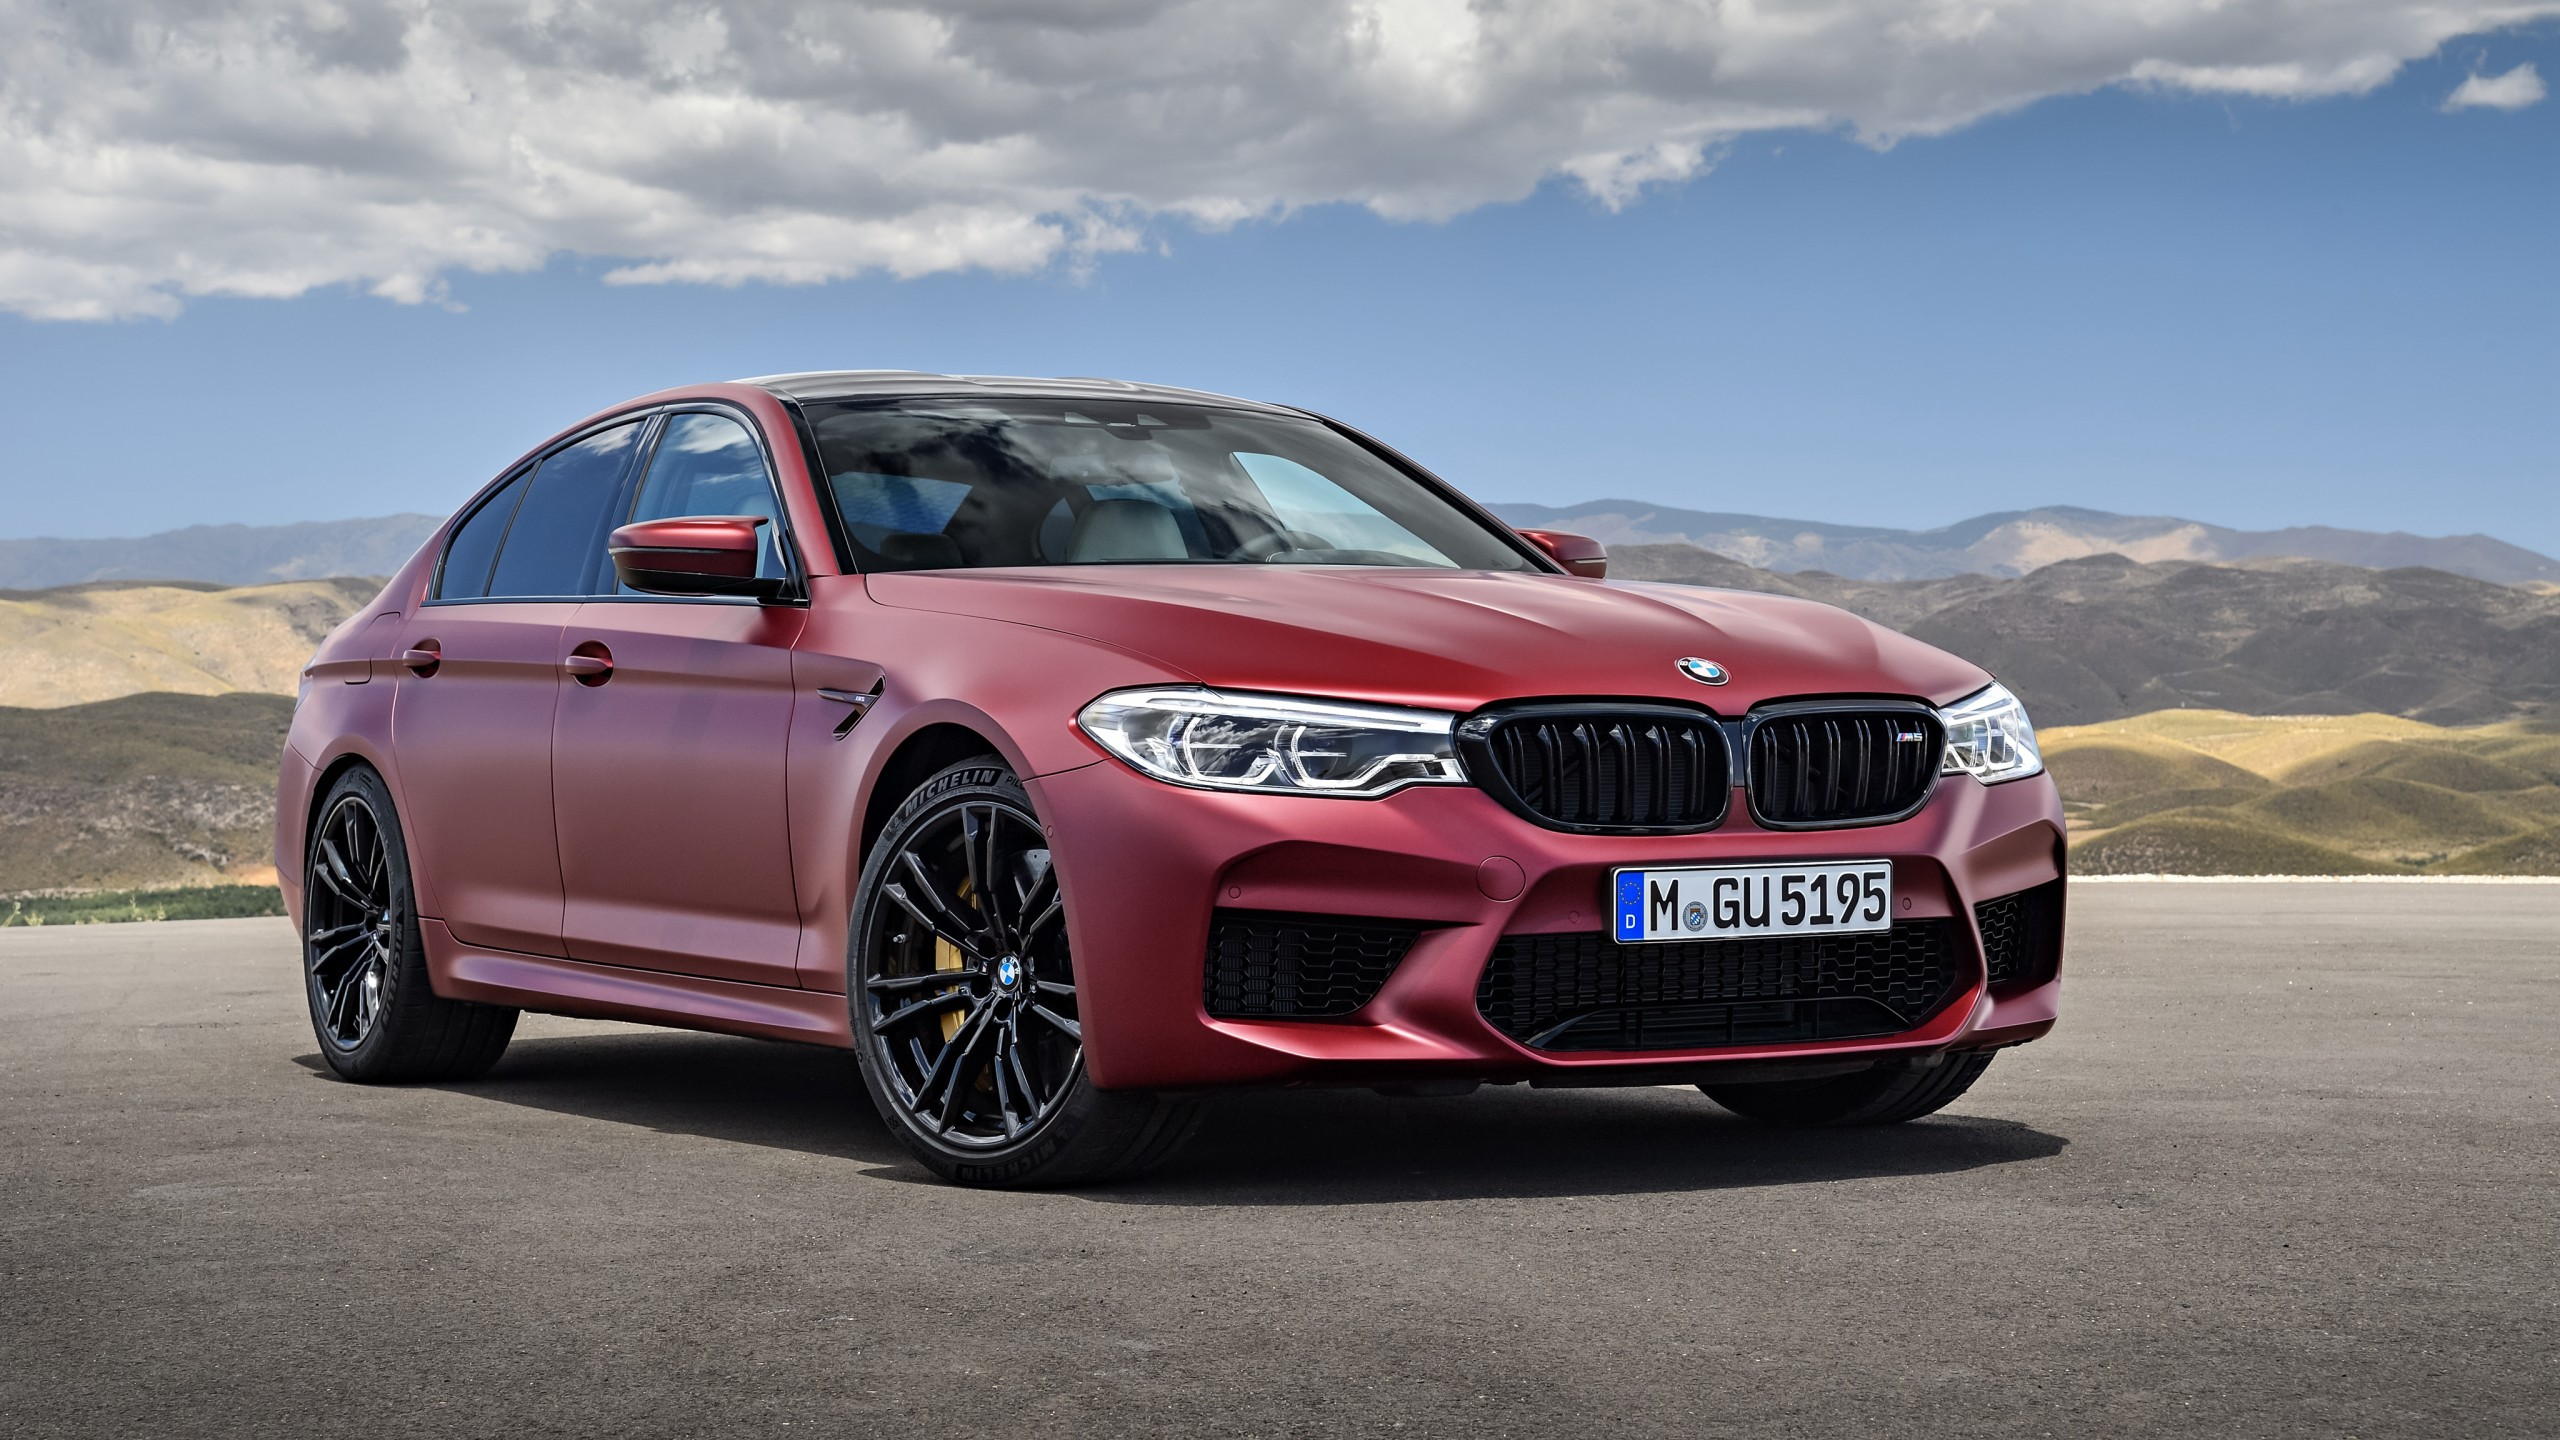 2018 BMW M5 First Edition Wallpaper   HD Car Wallpapers ...